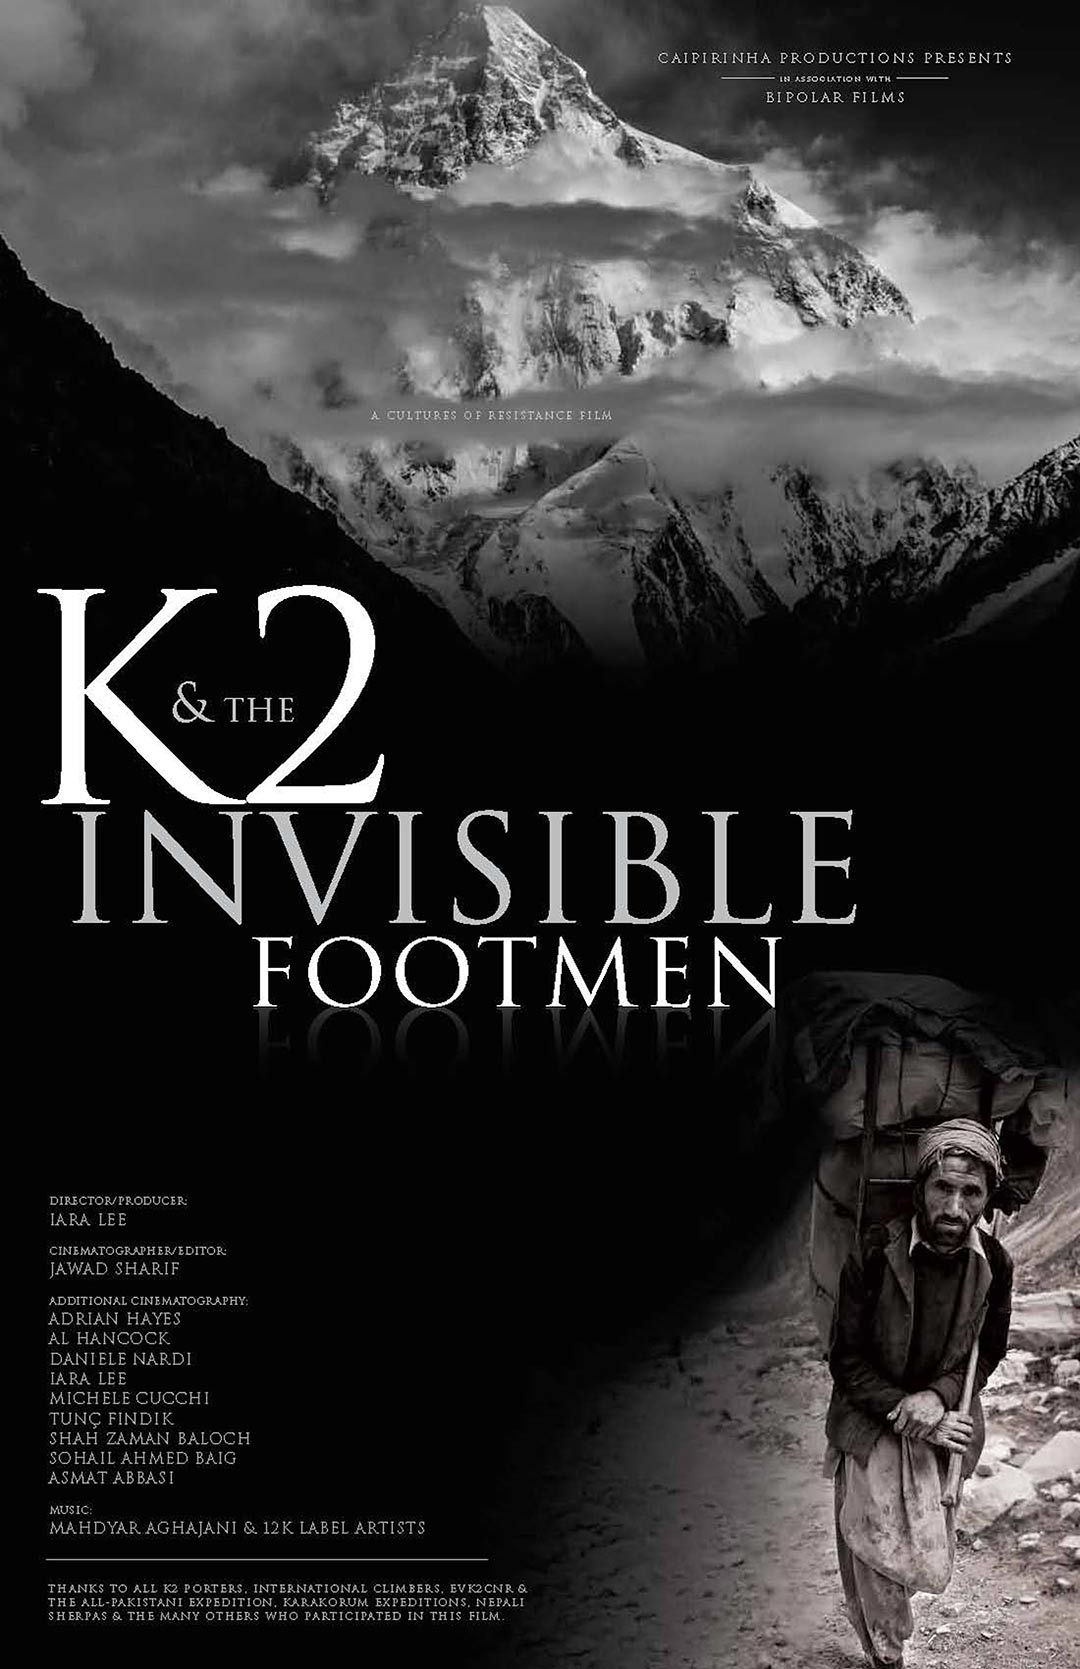 K2 and the Invisible Footmen Poster #1